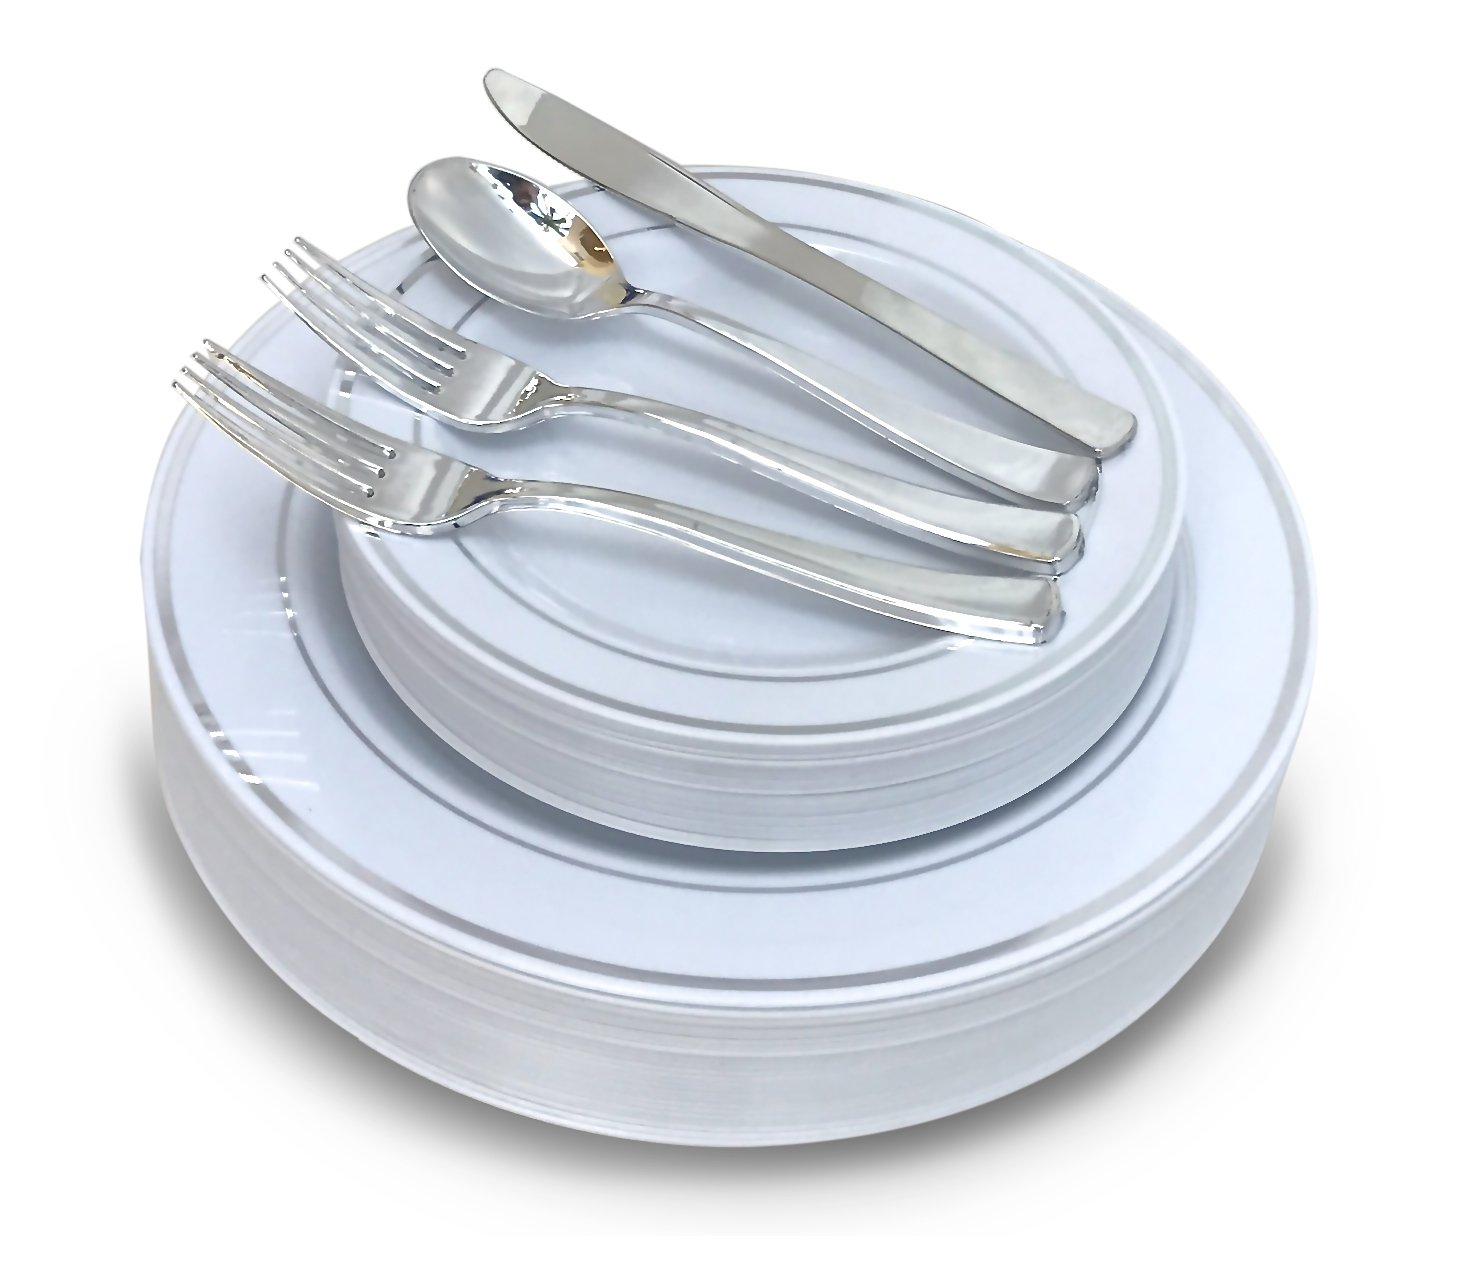 '' OCCASIONS '' 720 PCS / 120 GUEST Wedding Disposable Plastic Plate and Silverware Combo Set , (White / Silver Rim plates, Silver silverware)